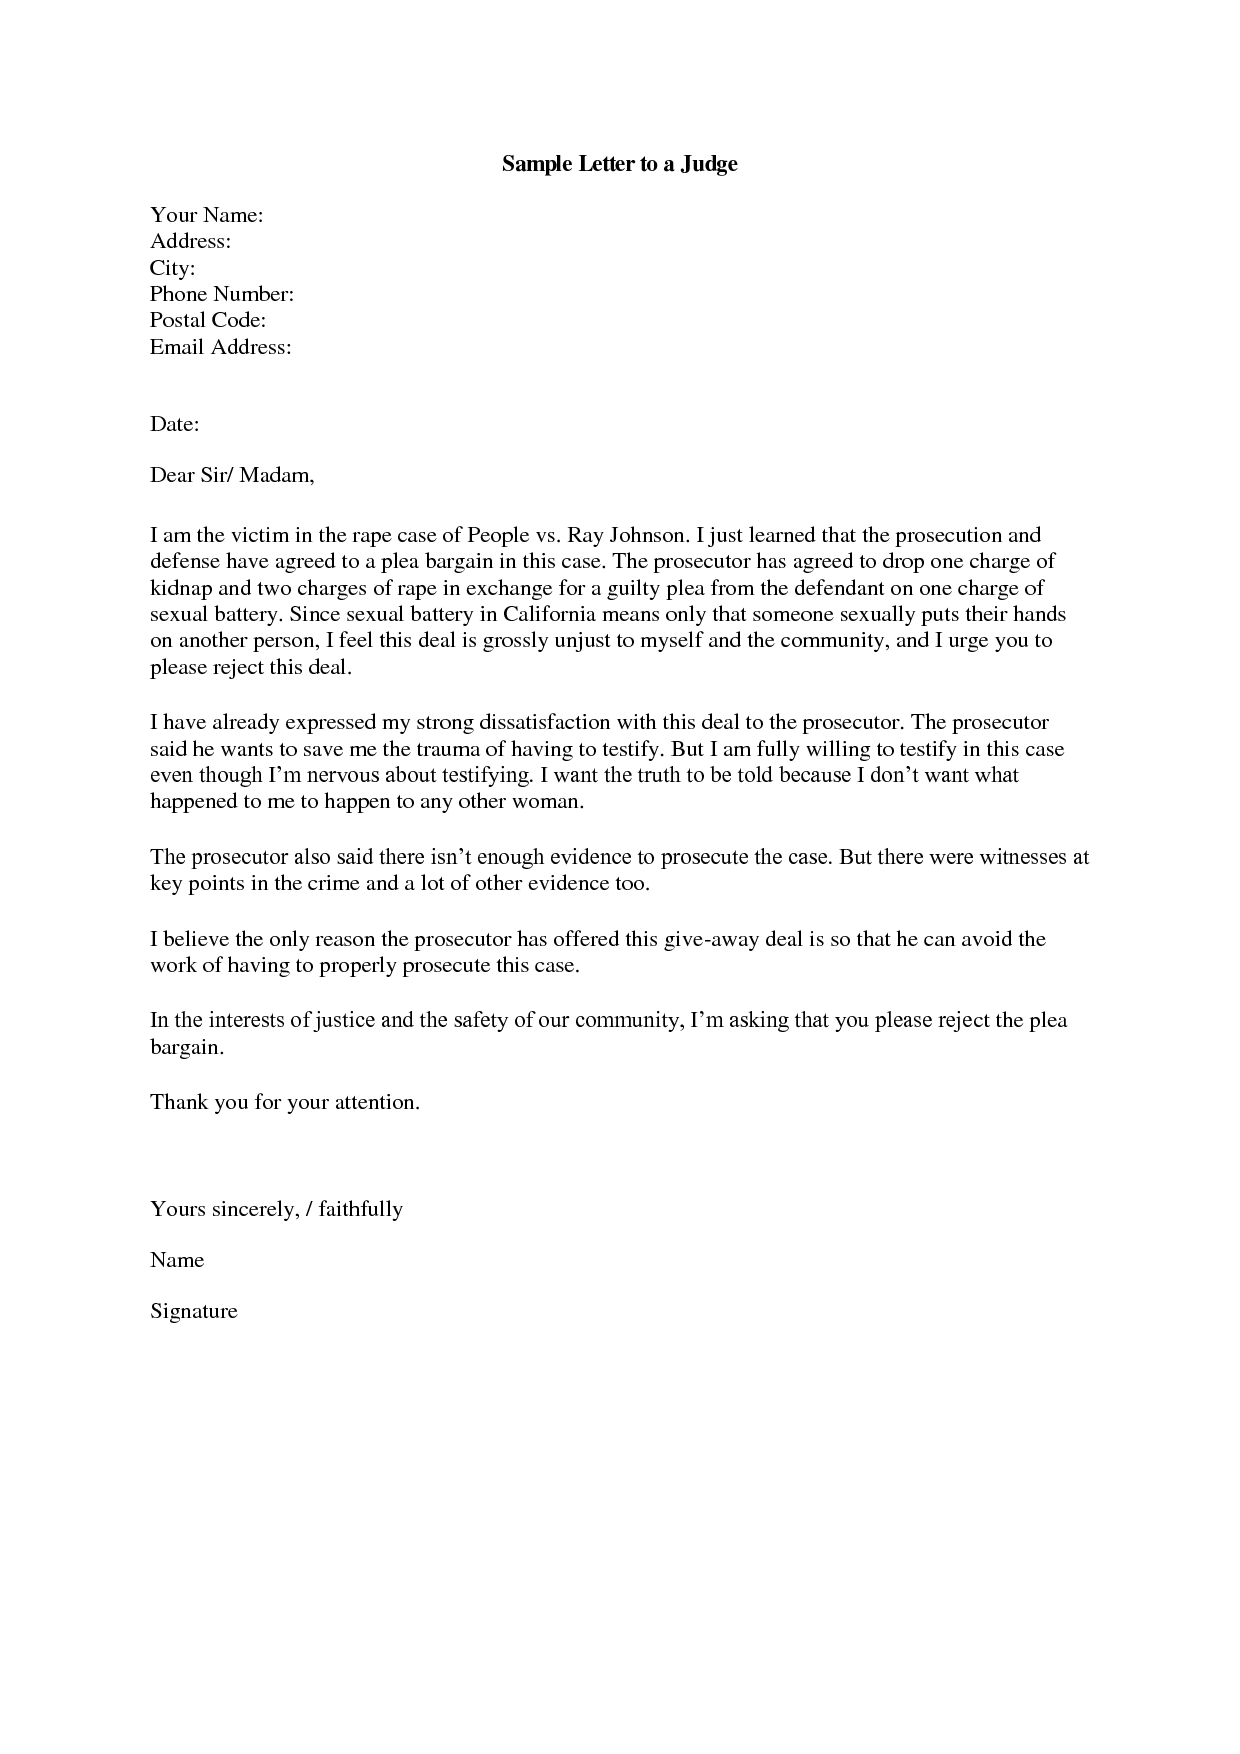 Formal Letter Format To Judge  Examples And Forms Throughout Letter To Judge Template